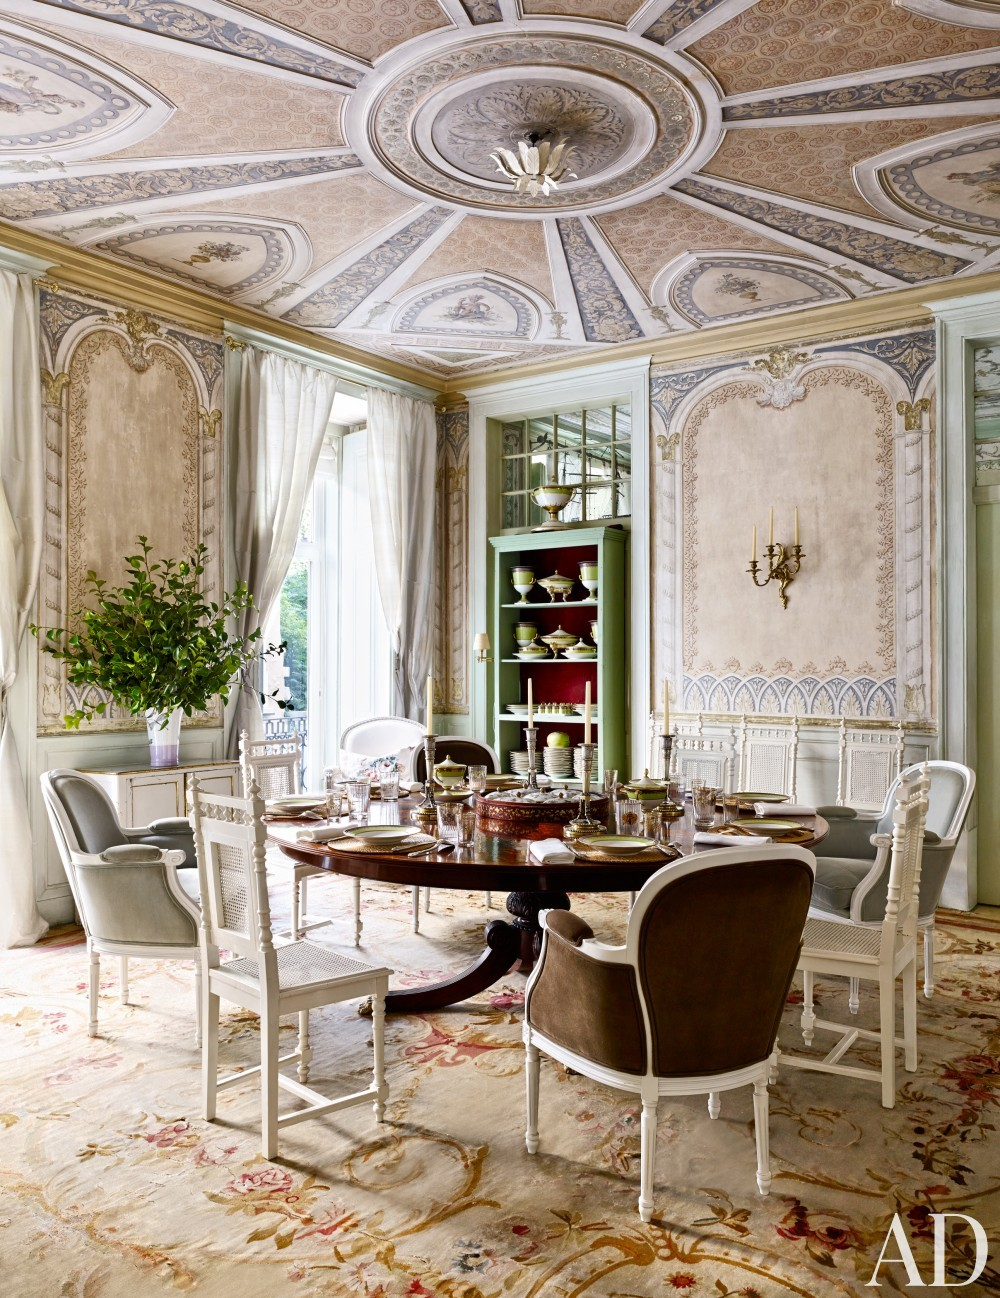 Traditional Dining Room by Pedro Espírito Santo in Lisbon, Portugal